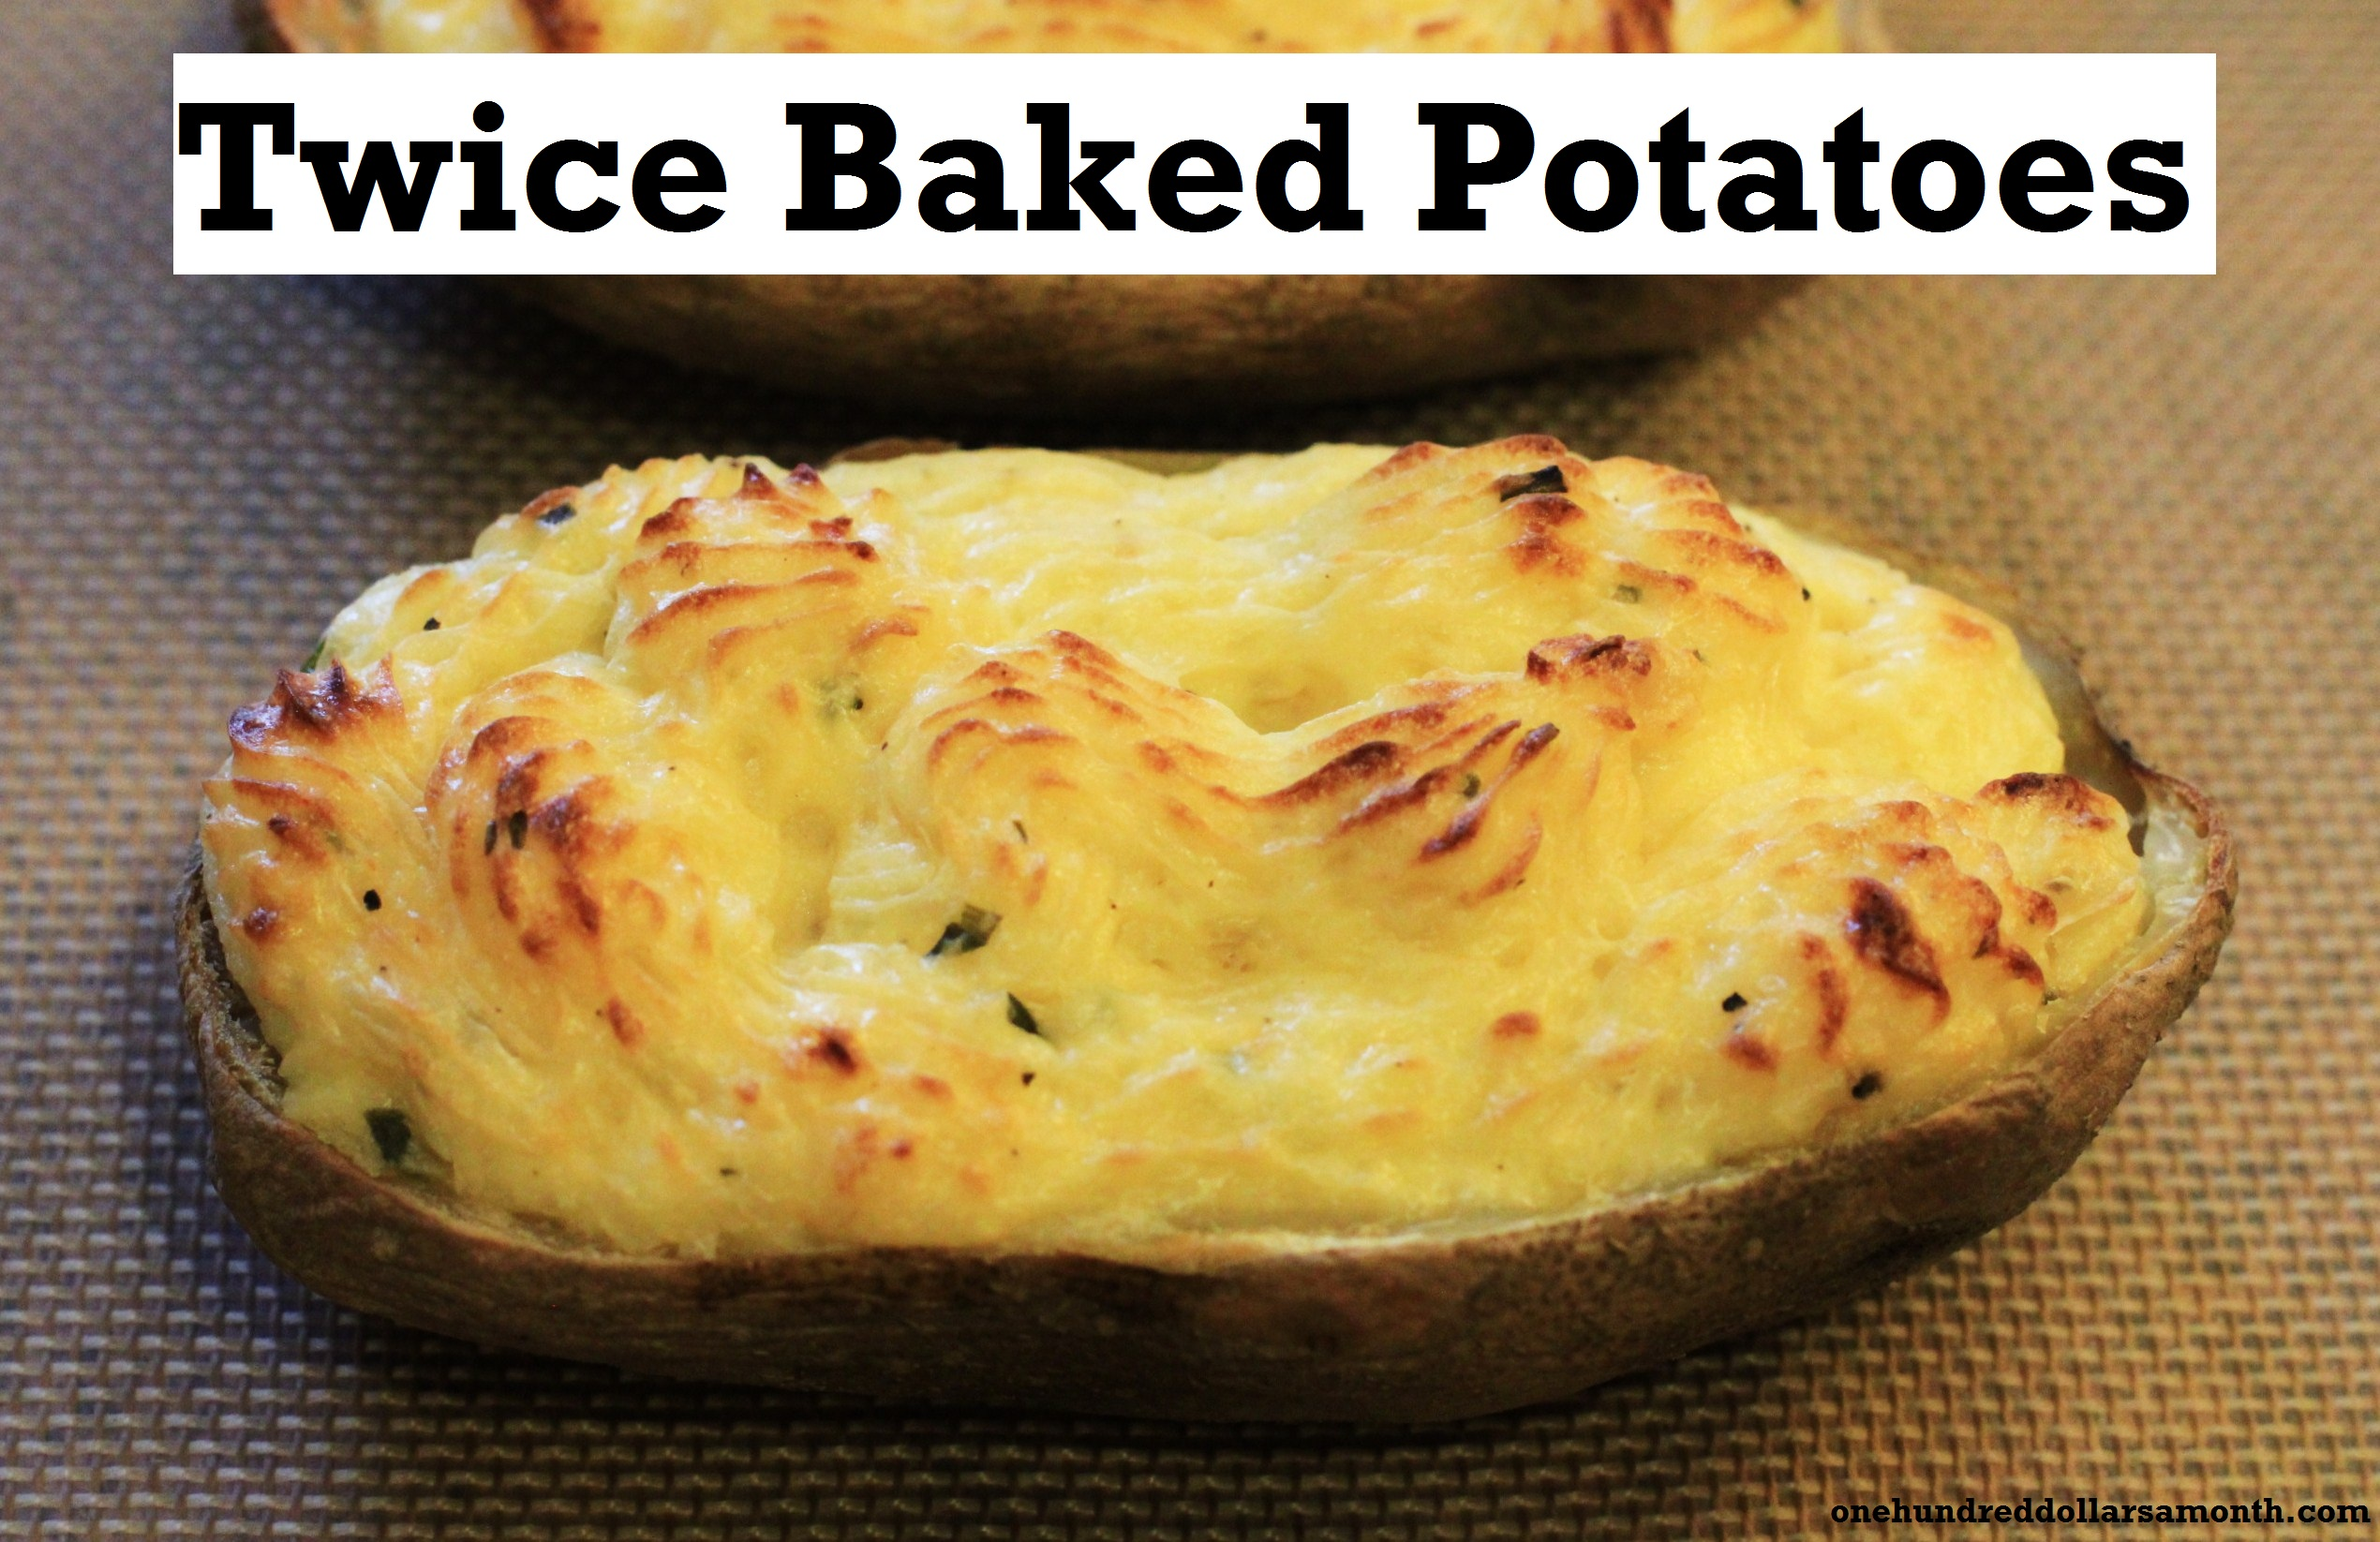 Recipe: Twice Baked Potatoes